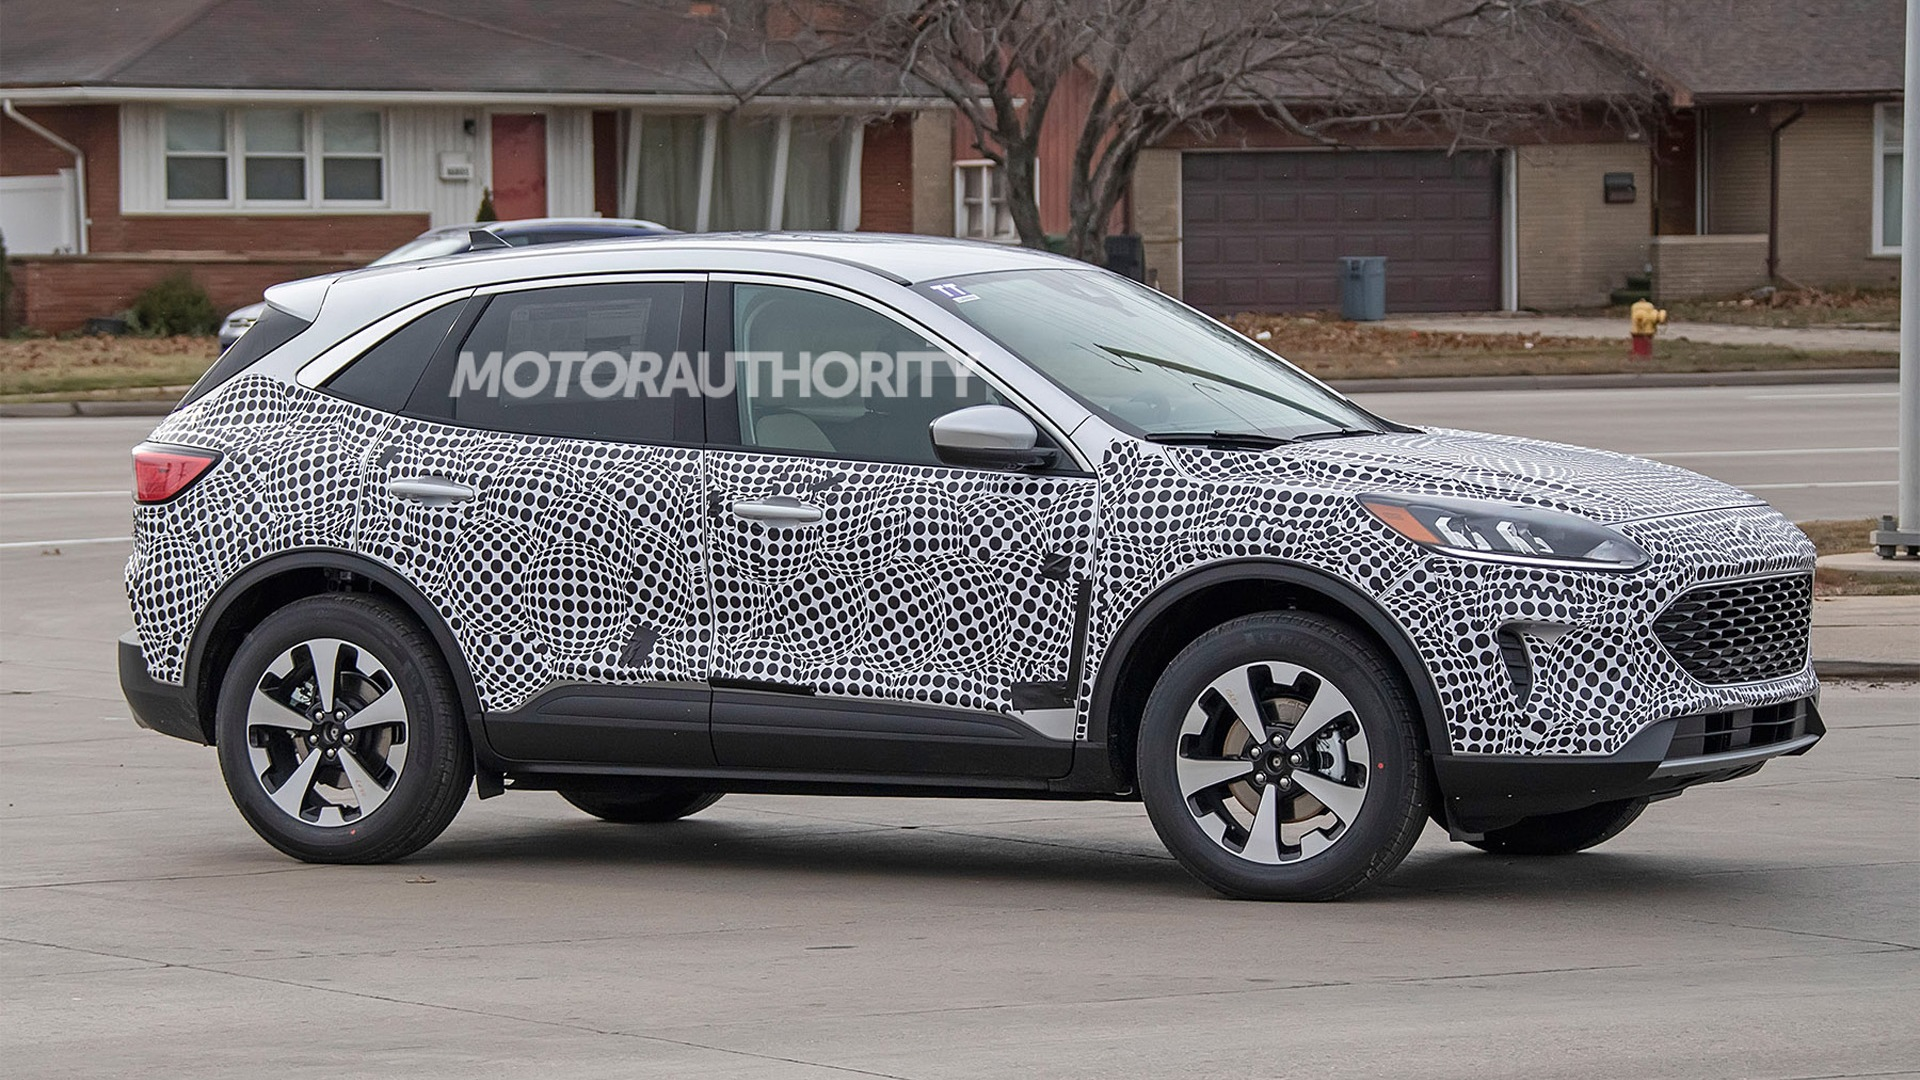 91 The Best 2020 Ford Escape Style